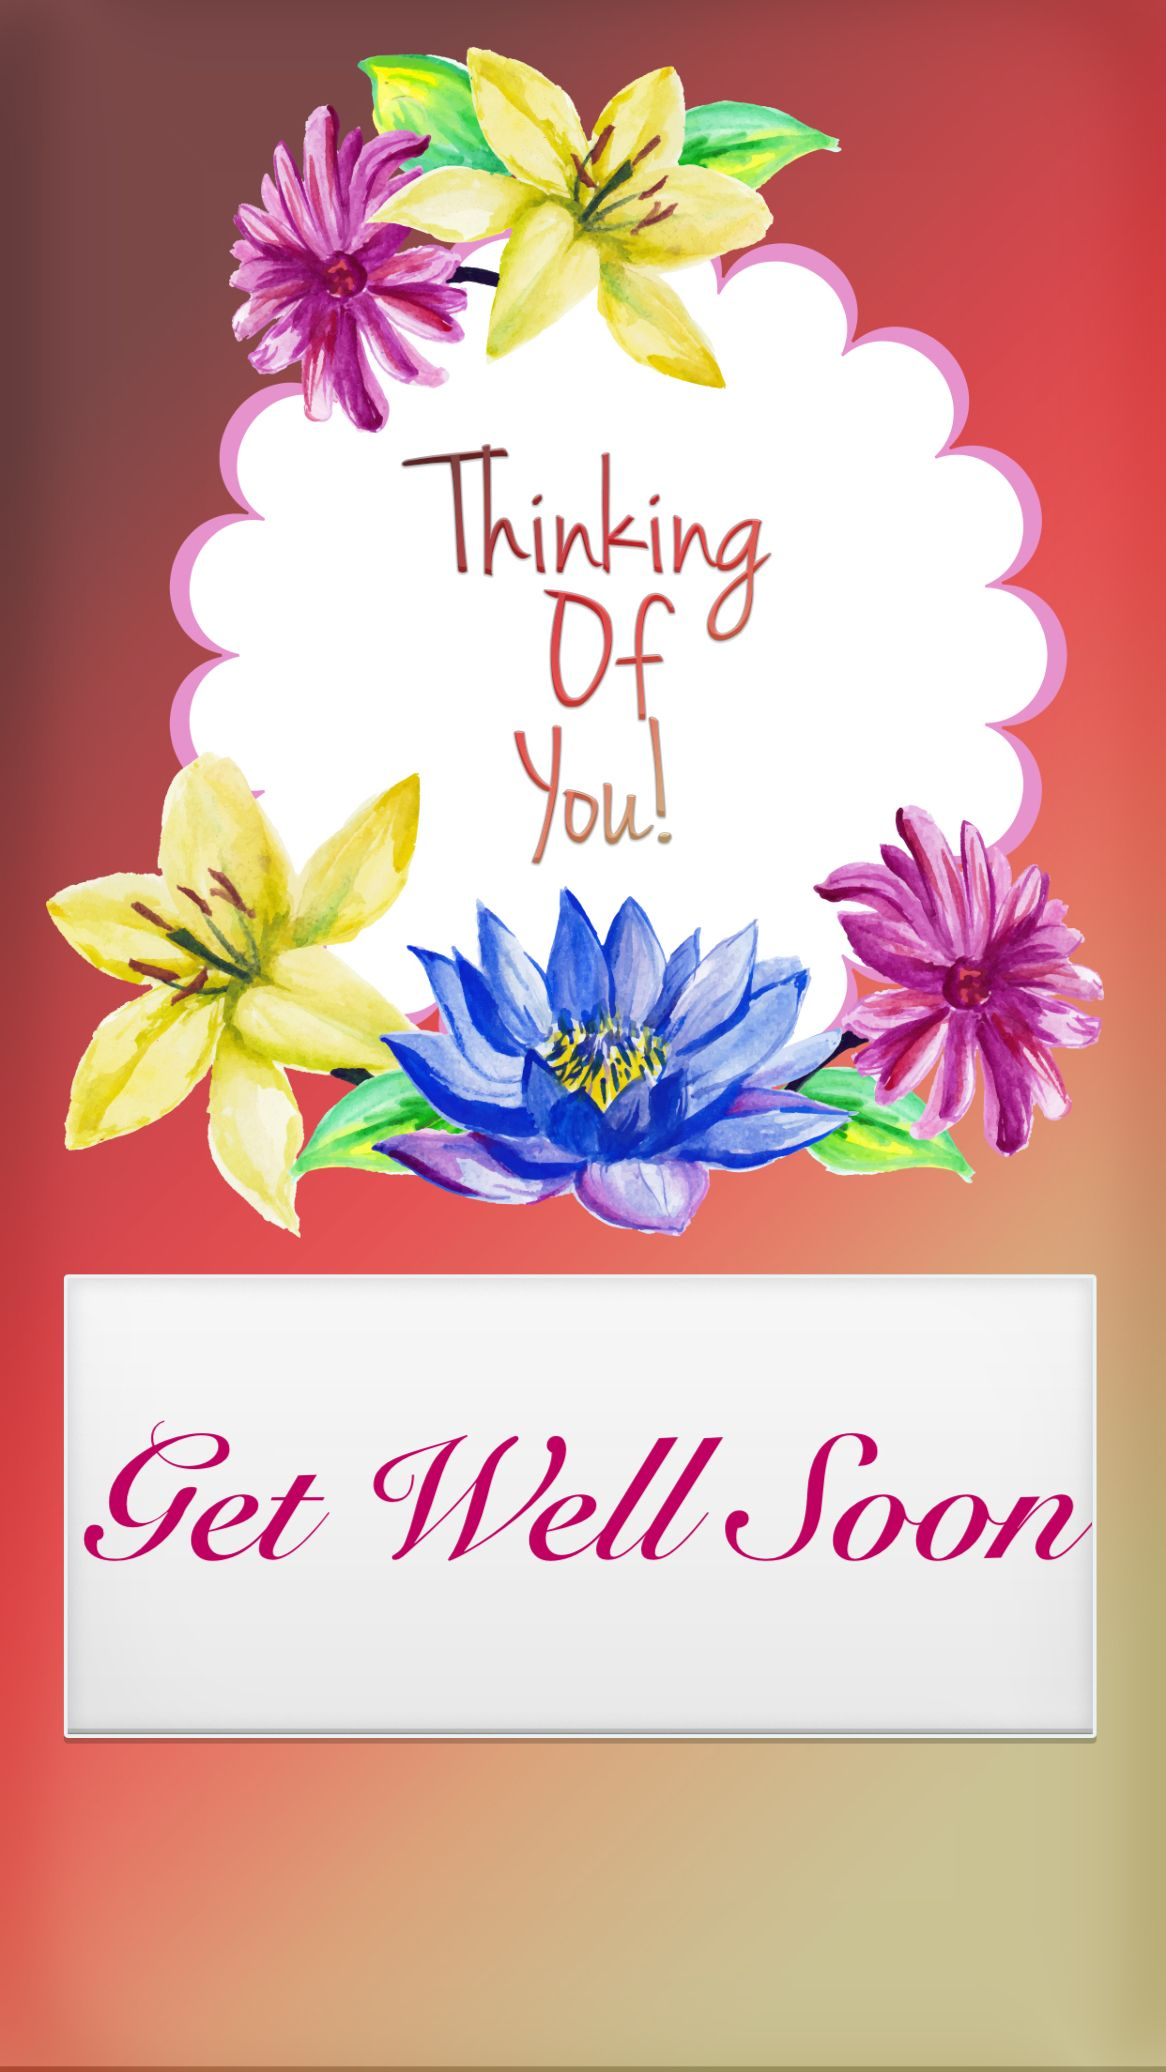 Pin By Nicole Herbert On Get Well Soon Pinterest Recovery